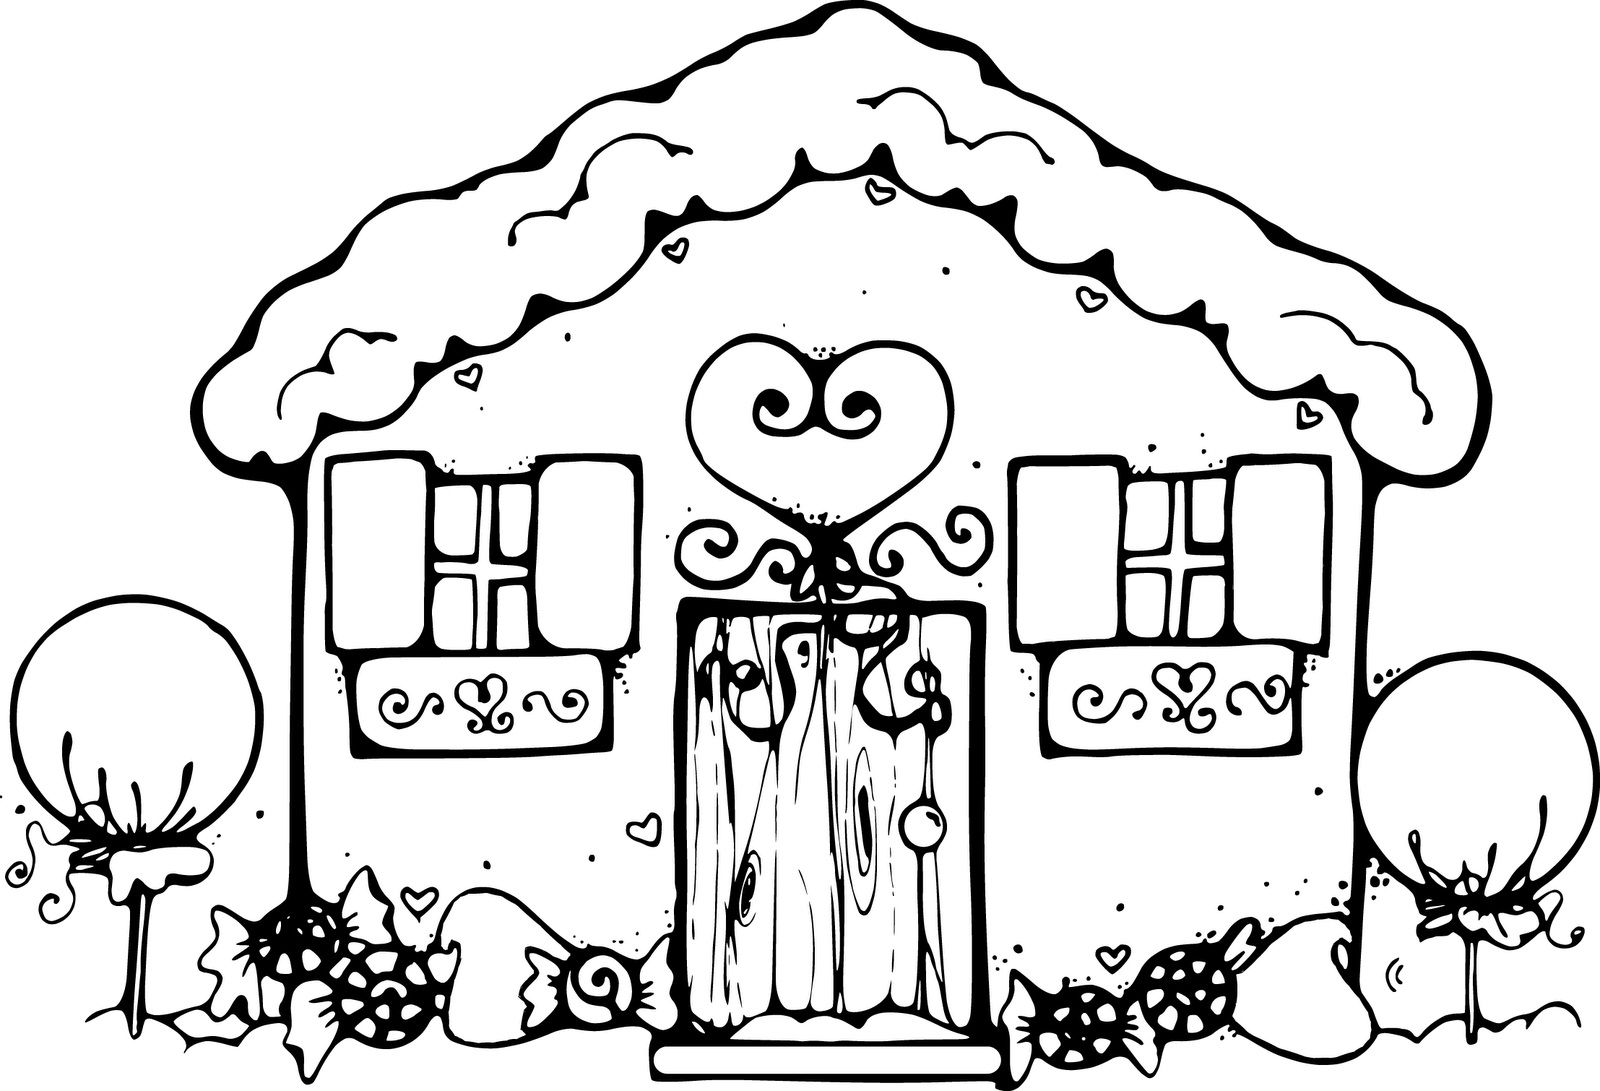 pictures of houses to color house coloring pages downloadable and printable images pictures color houses of to